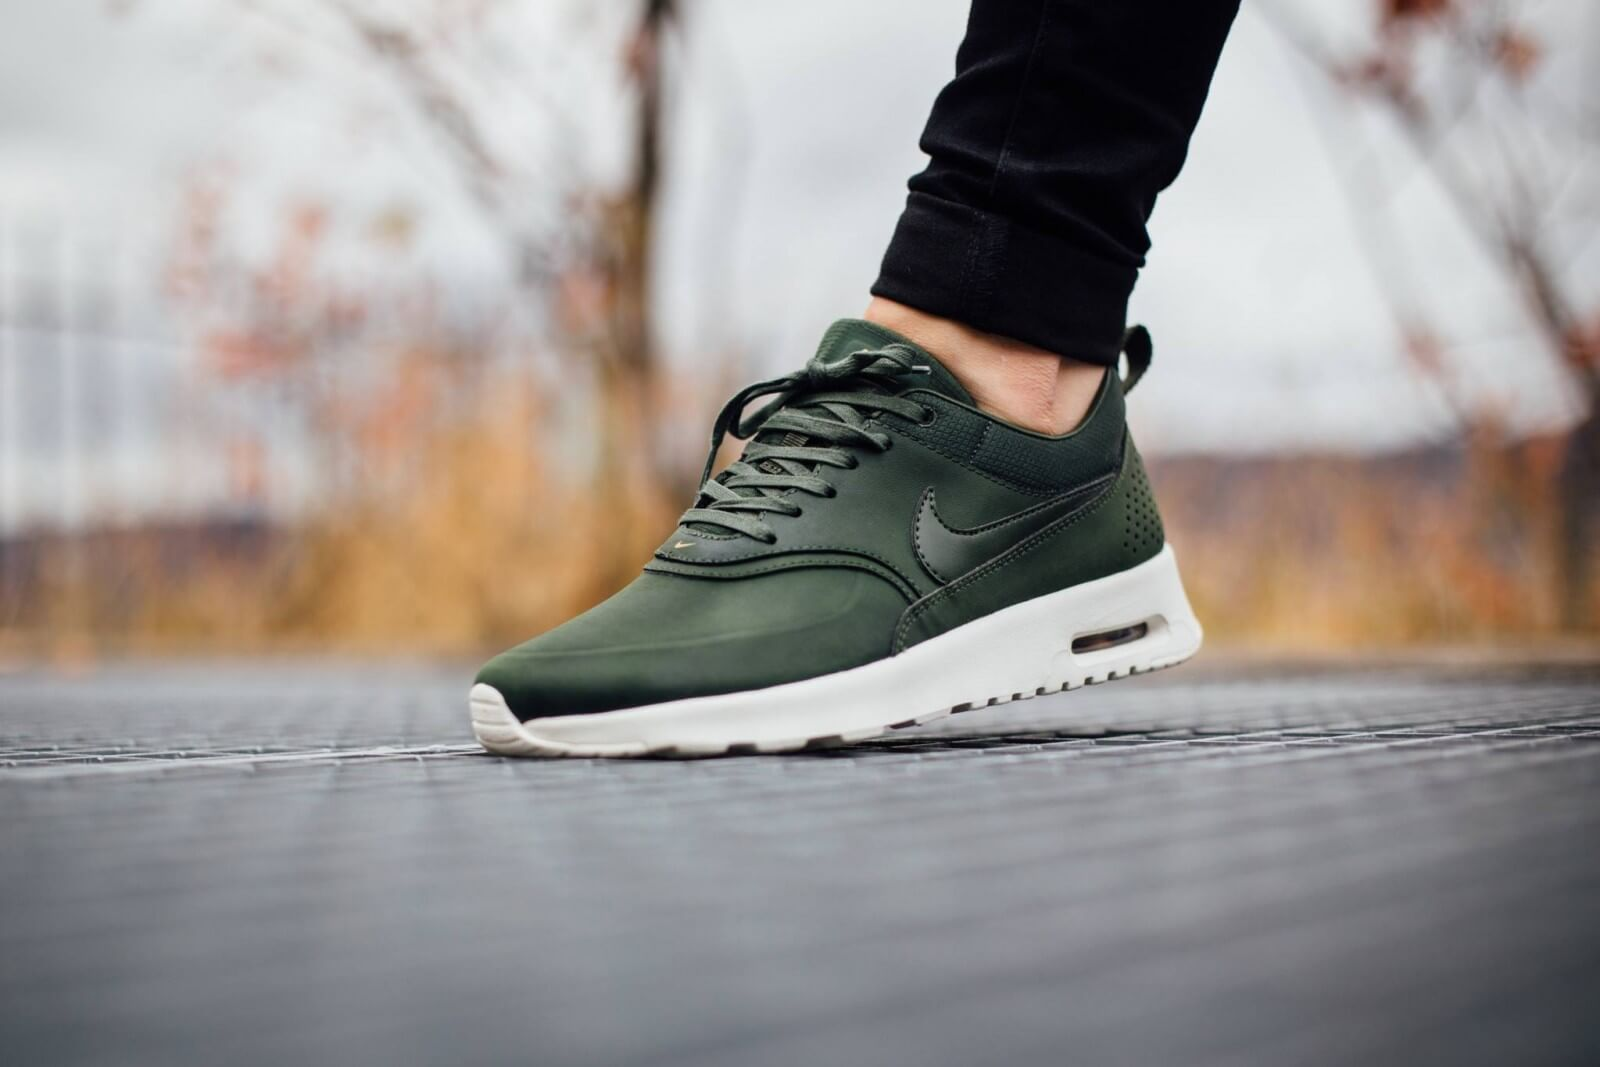 Nike Air Max Thea PRM Carbon Green 616723 304